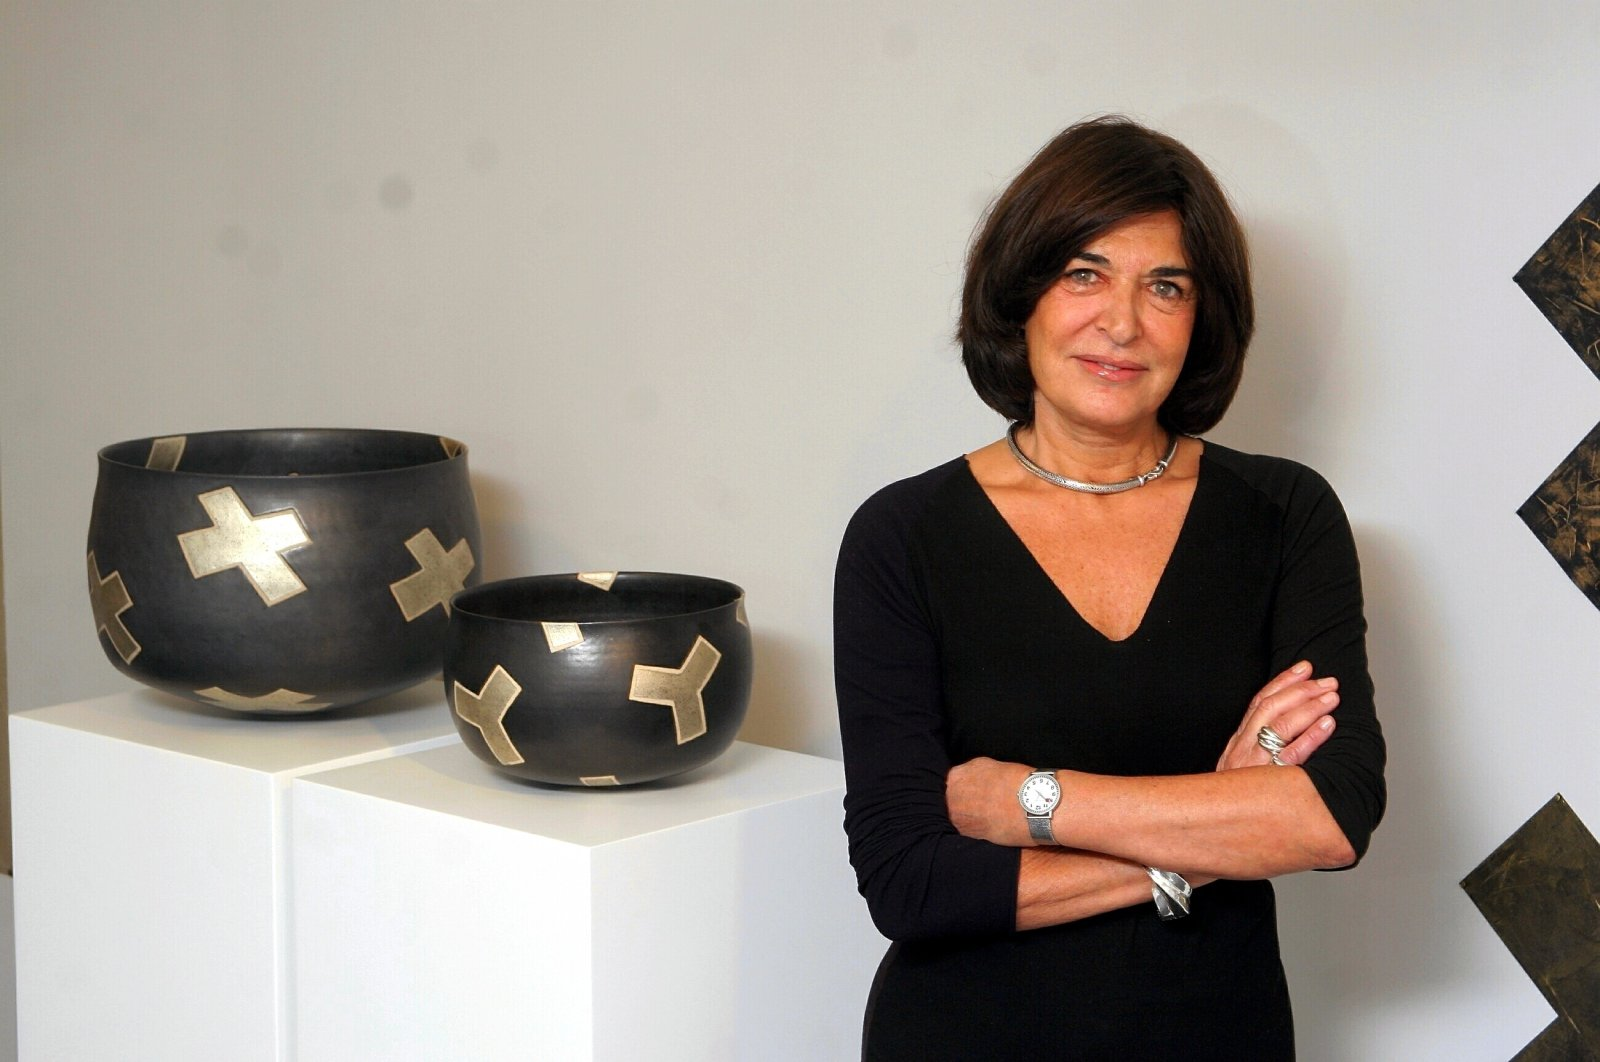 Alev Ebuziyya Siesbye poses with two of her ceramic works at one of her previous exhibitions at Gallery Nev in Istanbul, Turkey. (Sabah Photo)